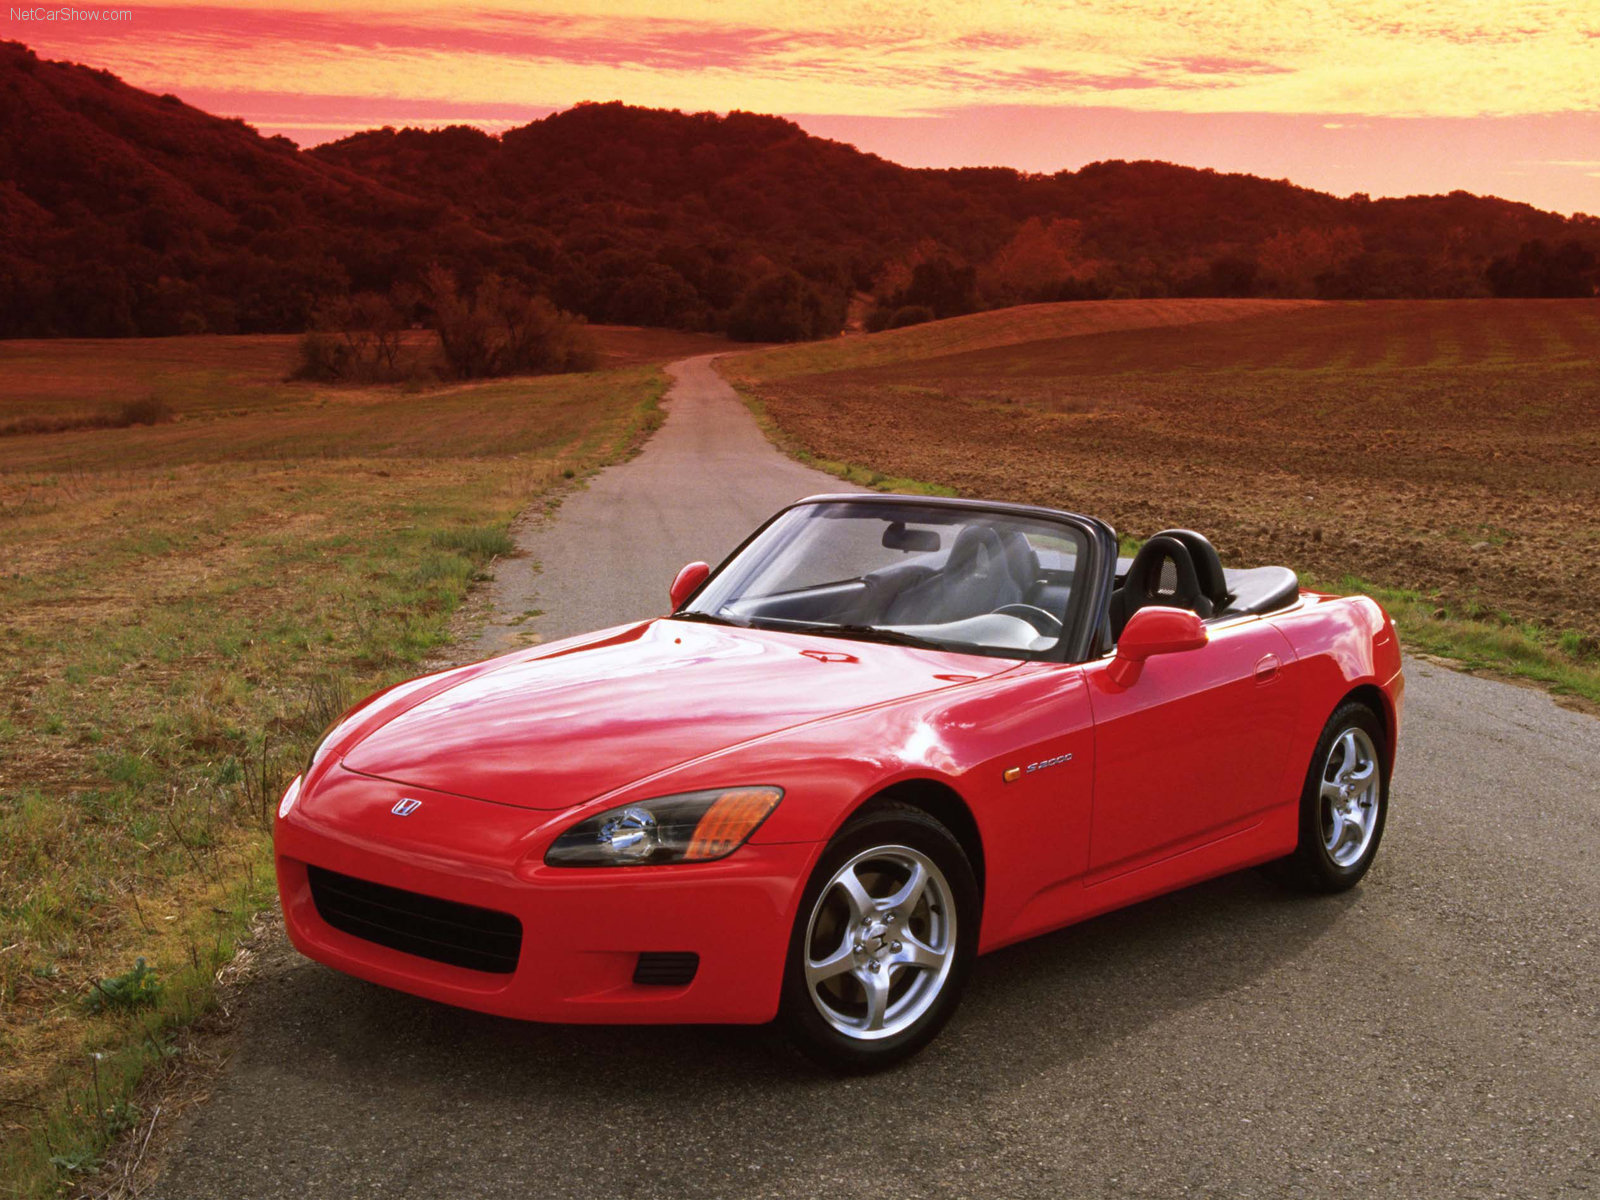 Honda S2000 I Restyling (AP2) 2003 - 2009 Cabriolet :: OUTSTANDING CARS